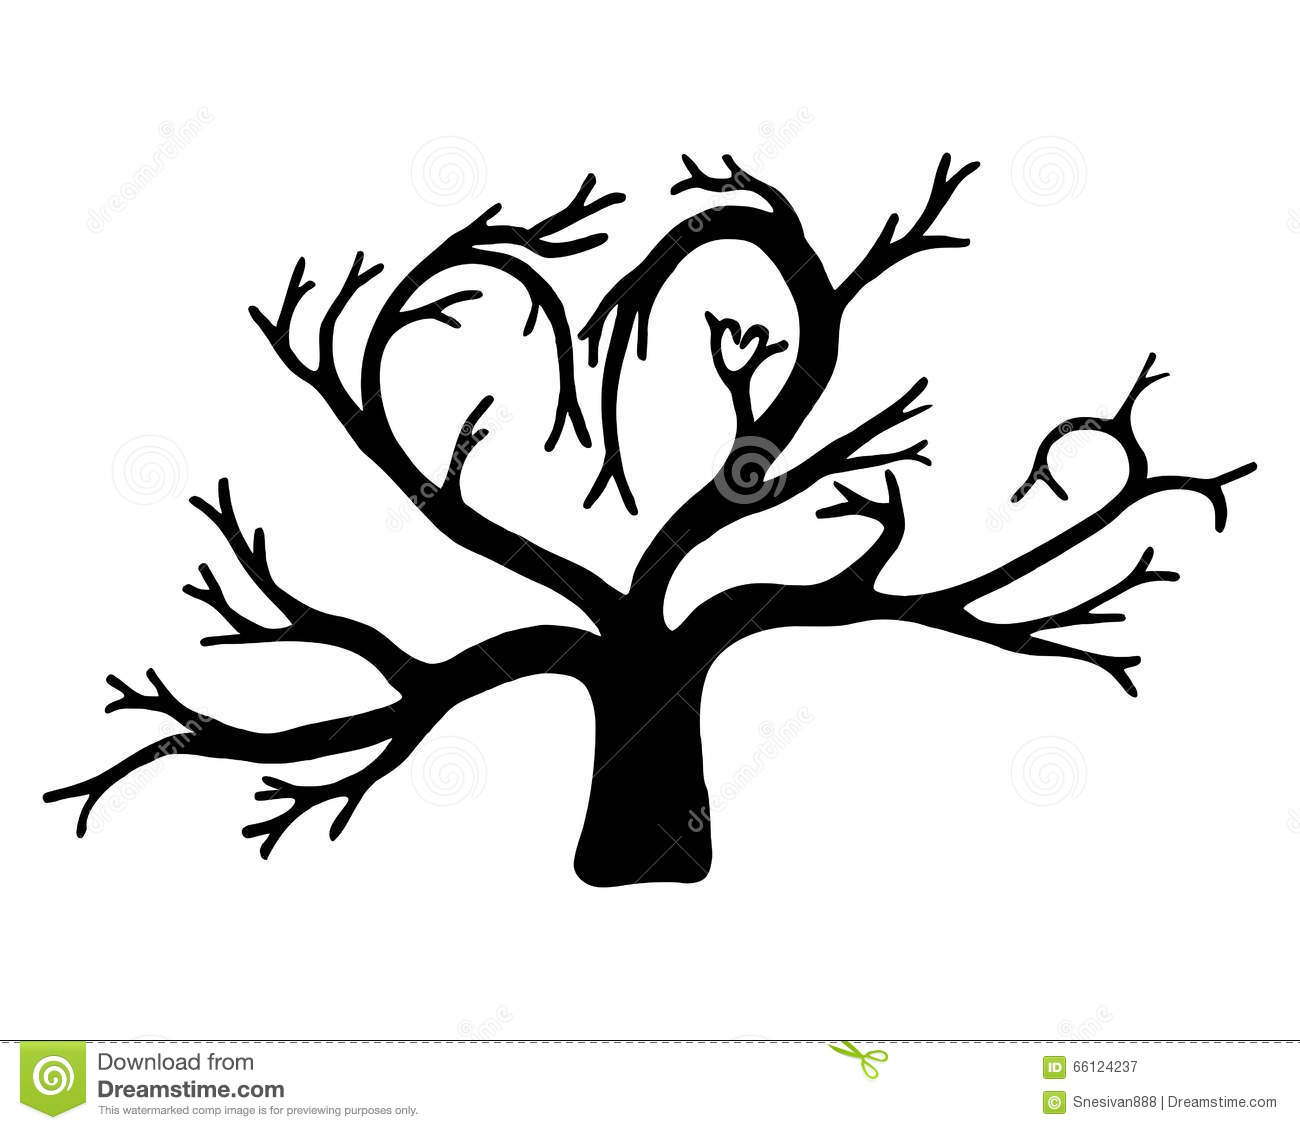 Silhouette Of A Tree In The Shape Of A Heart Isolated On